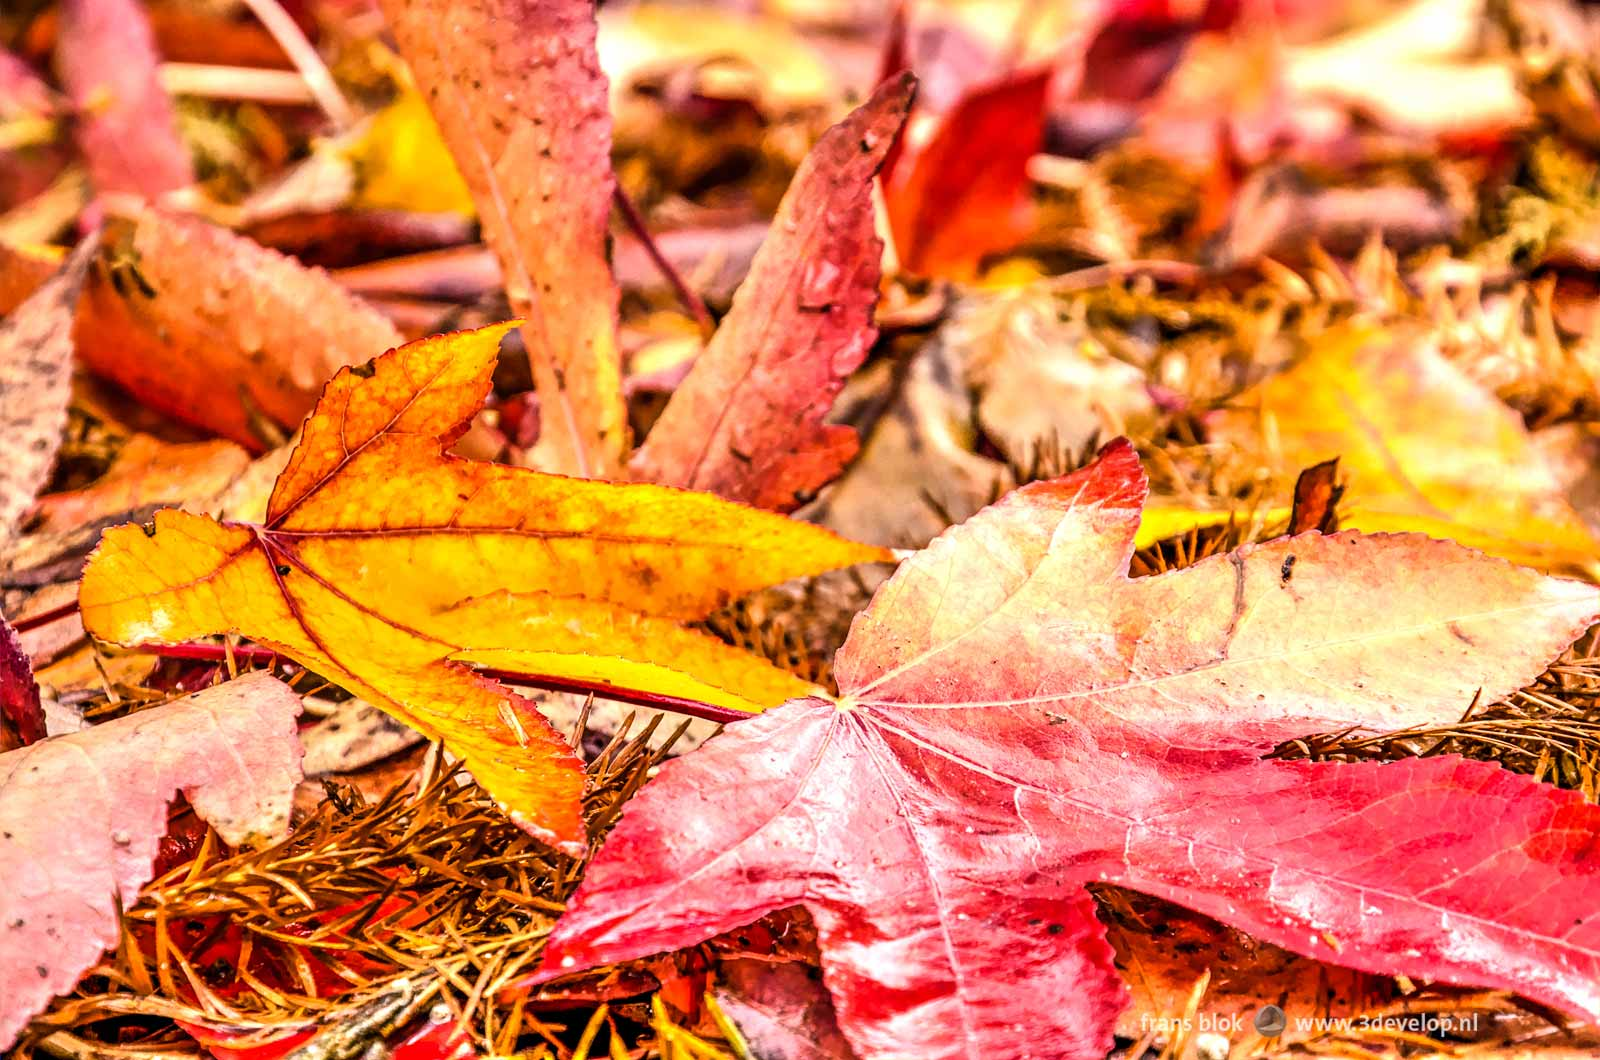 Close-up of two leaves in autumn, a yellow and red one, on the ground amidst other fallen leaves